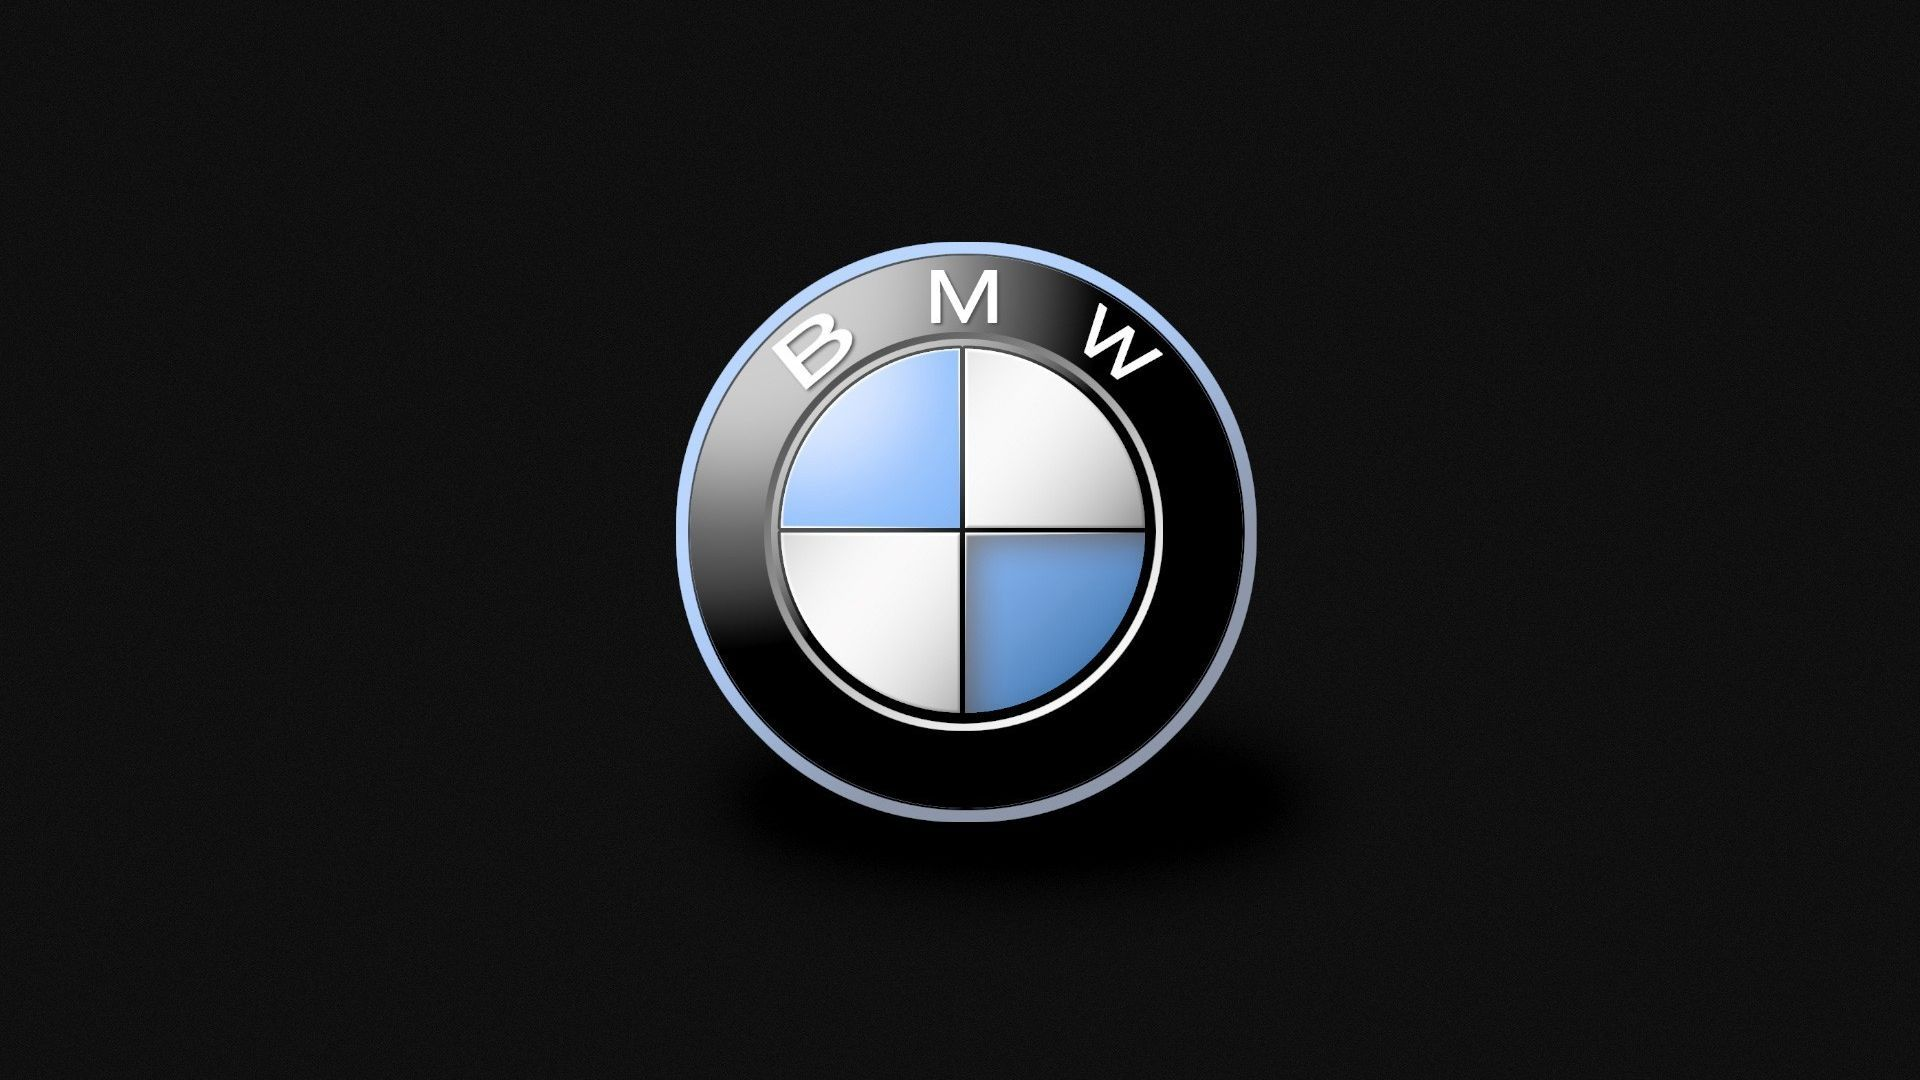 Bmw Car Brand Logo And Black Background Wallpaper Bmw Wallpapers